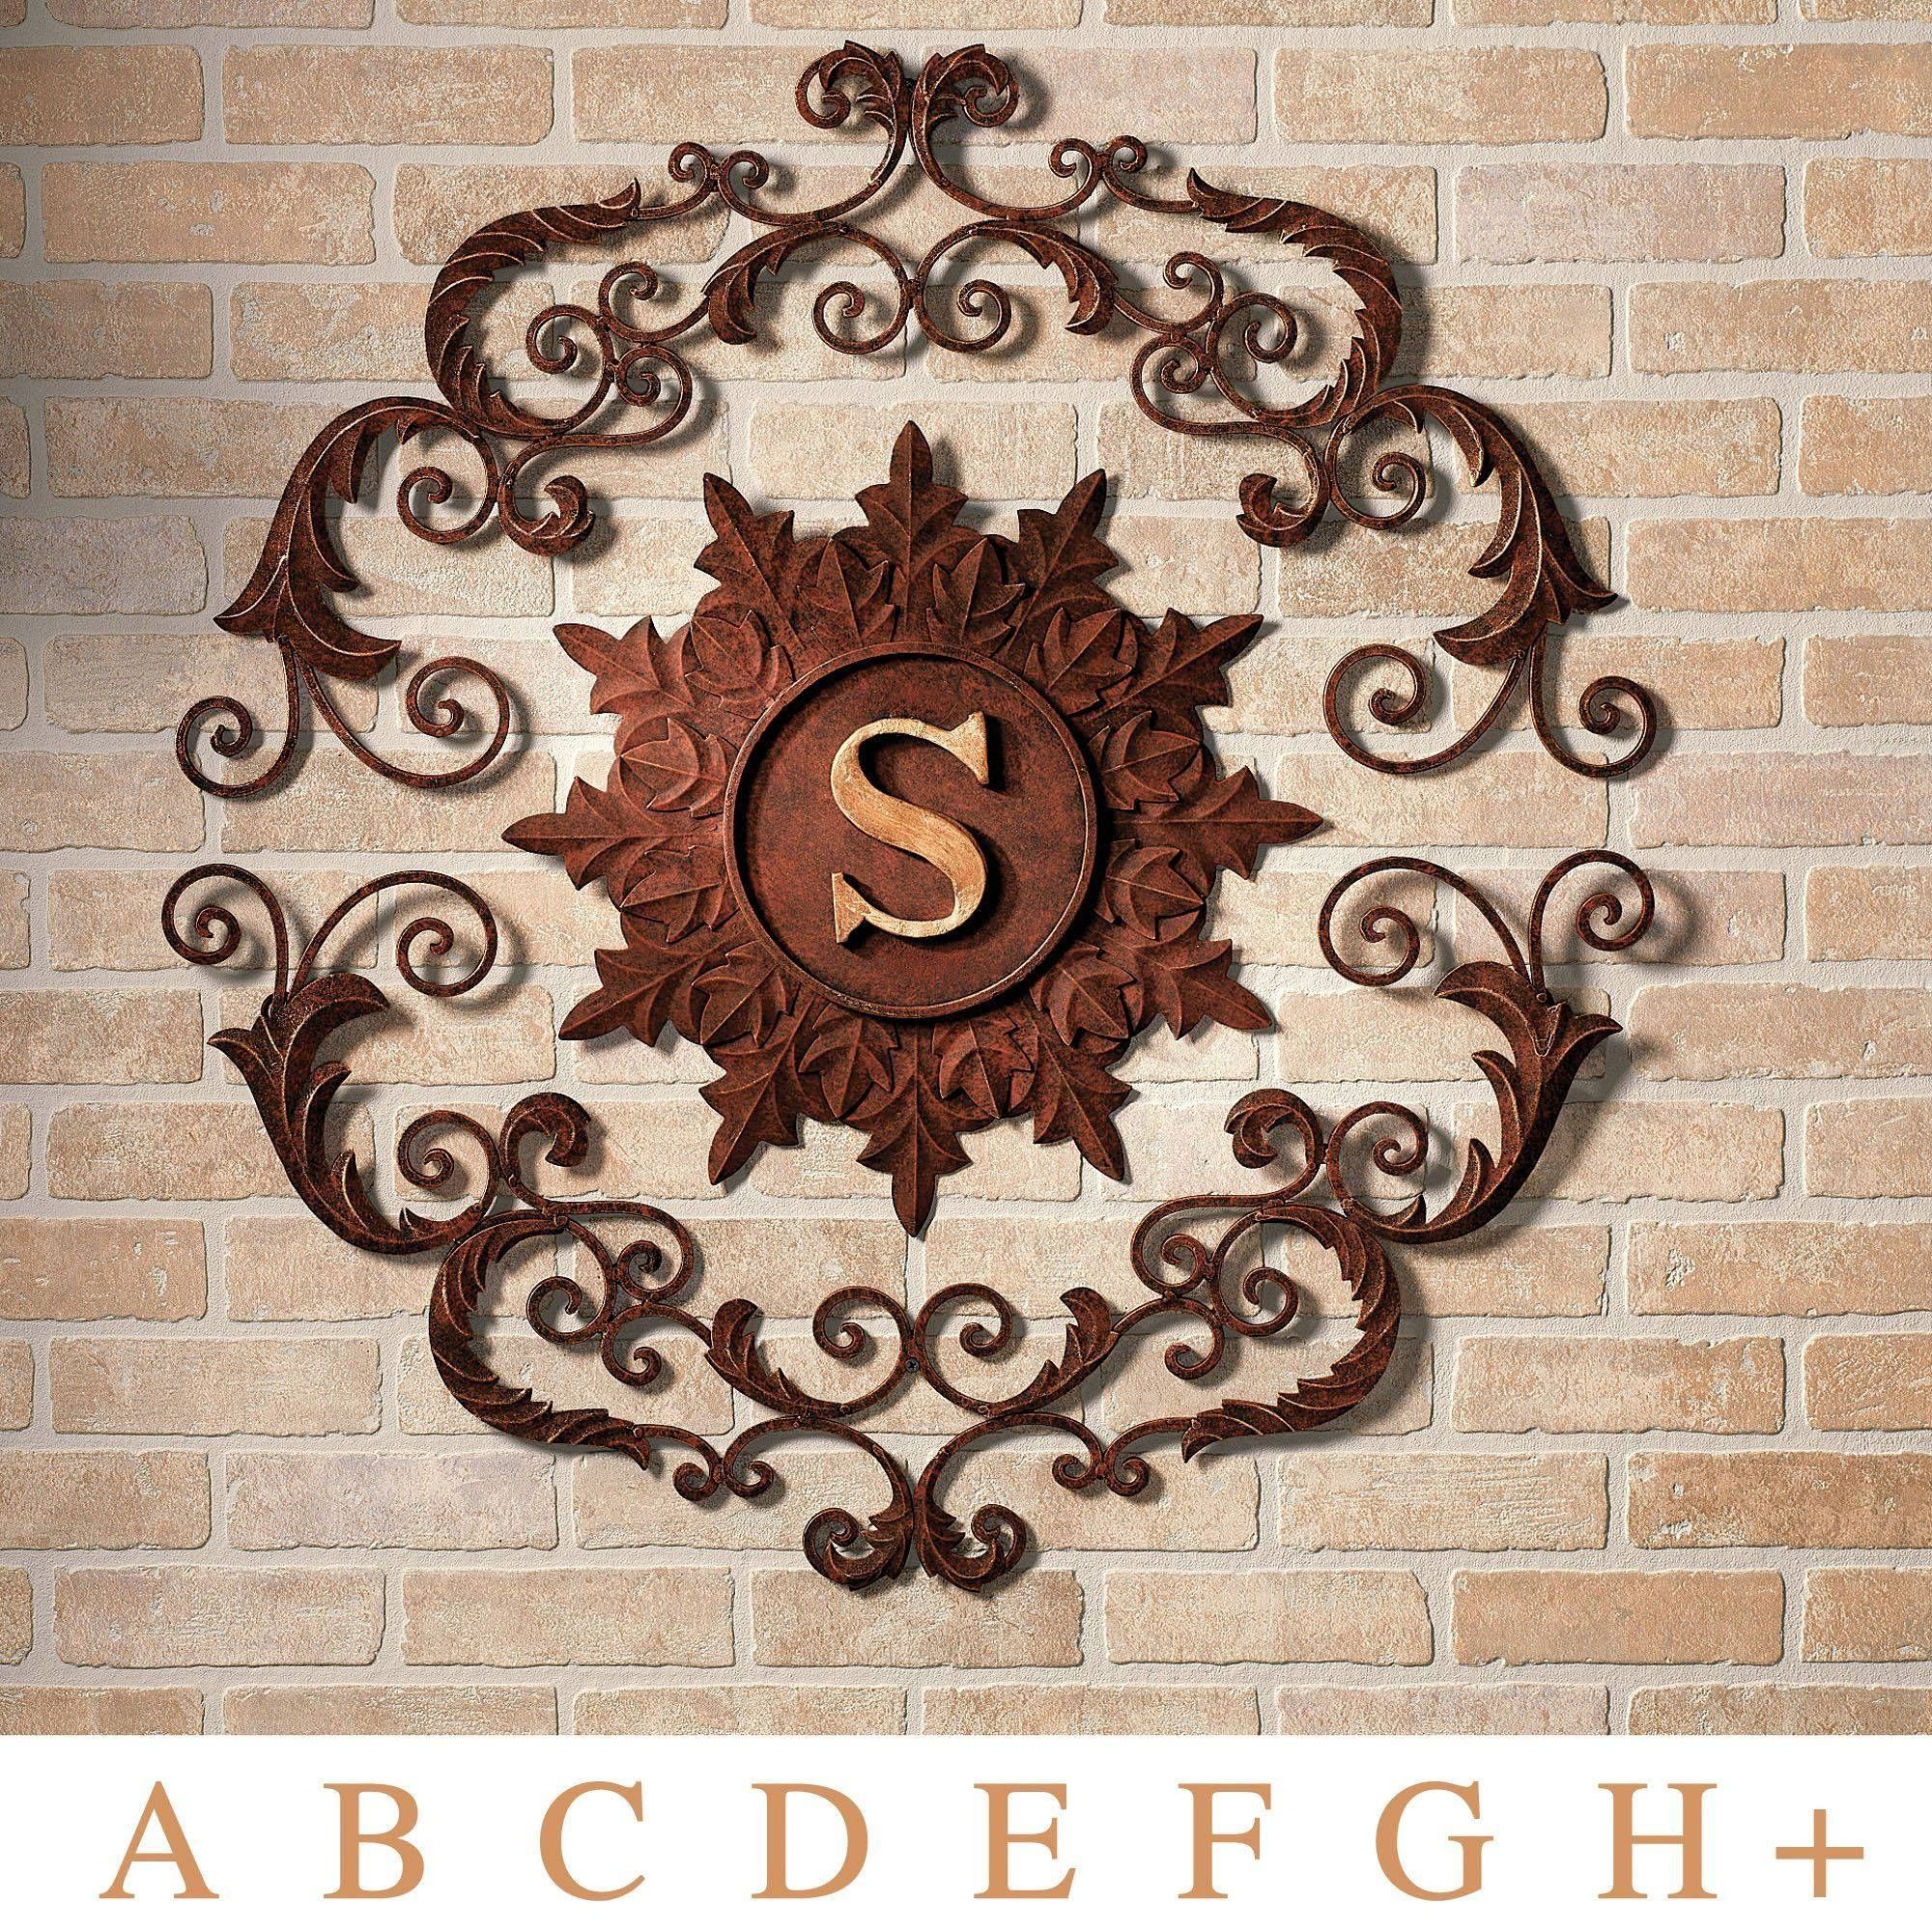 Kingston Monogram Metal Wall Grille With Regard To Latest Brown Metal Wall Art (Gallery 1 of 20)